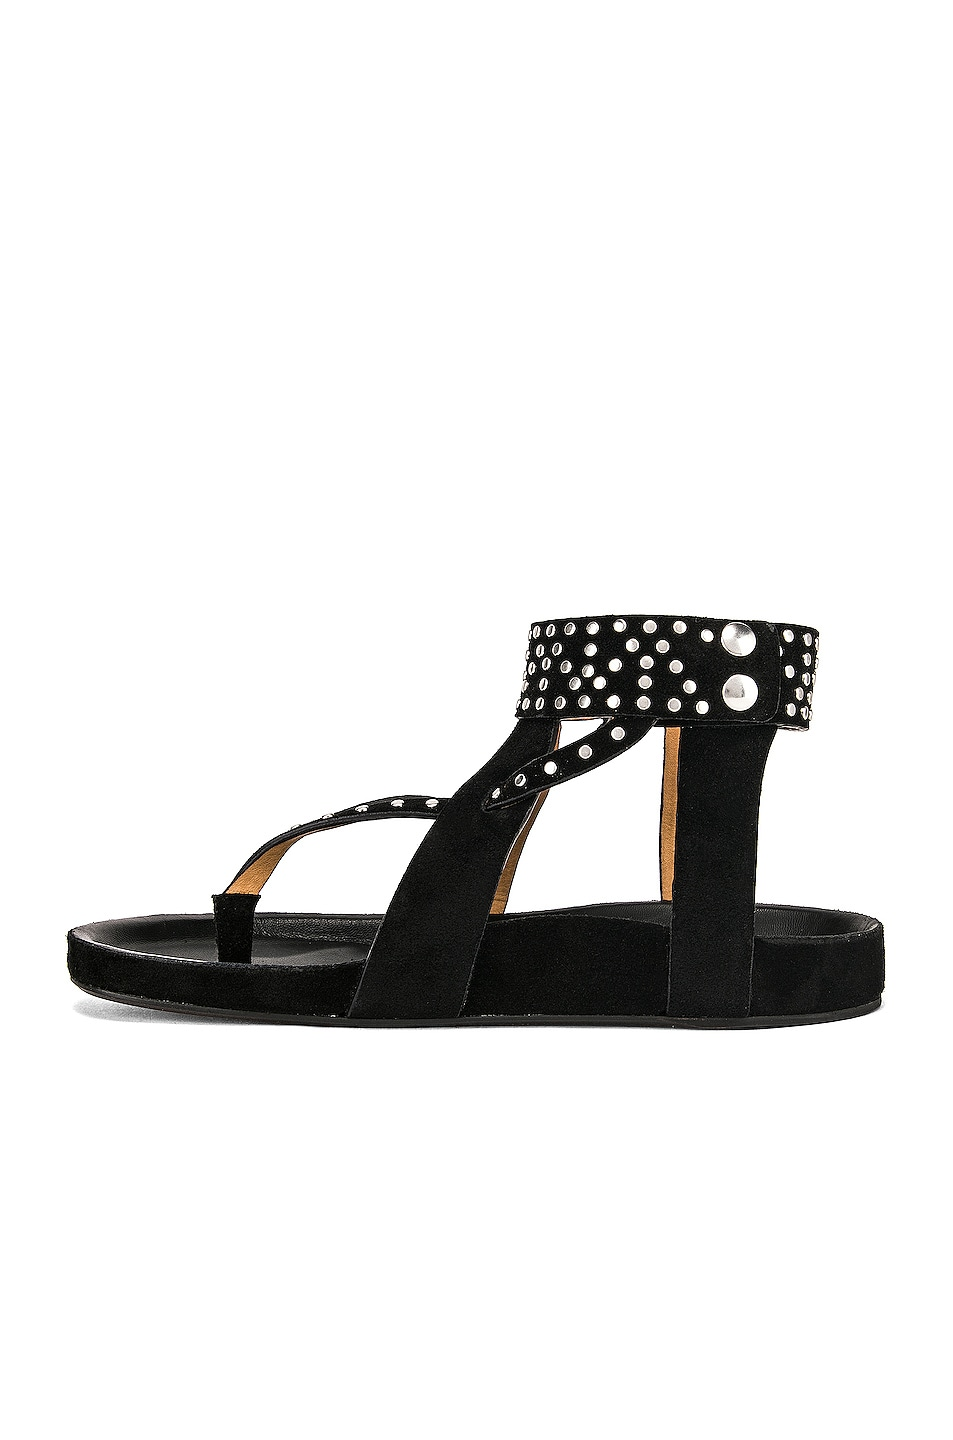 Image 5 of Isabel Marant Ellan Sandal in Black